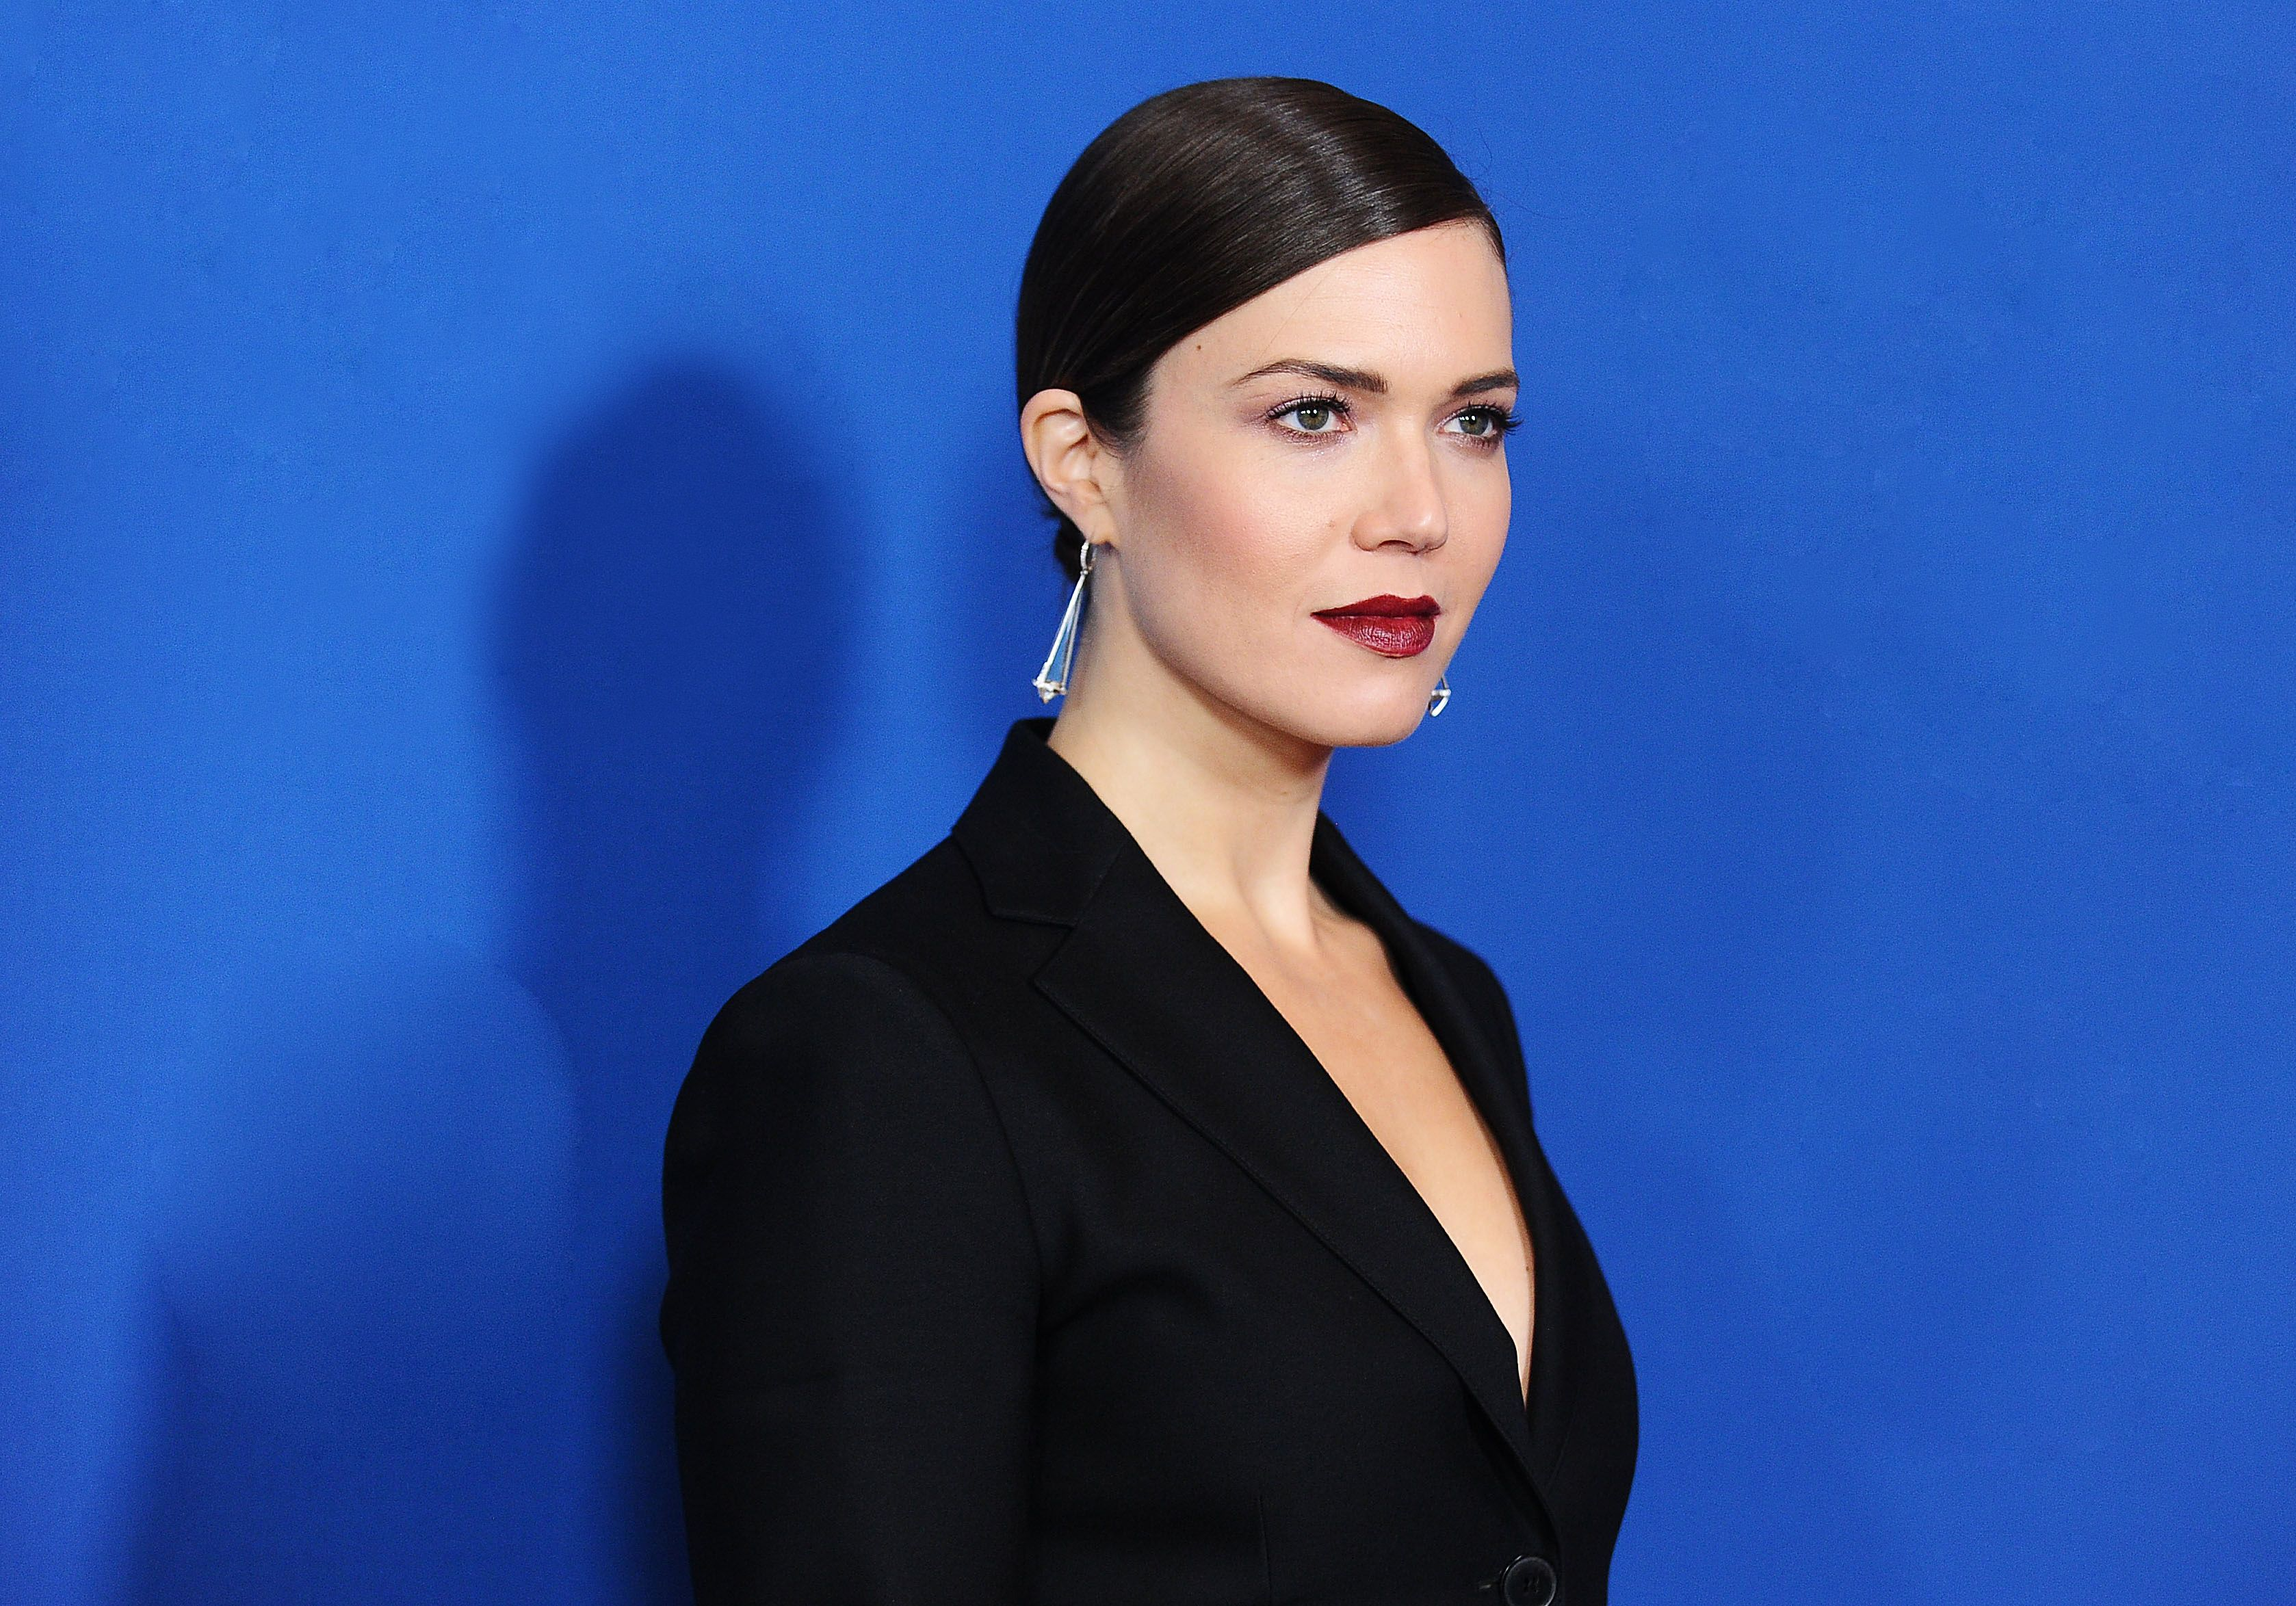 Surprise! Mandy Moore's Perfect Brows Are Microbladed